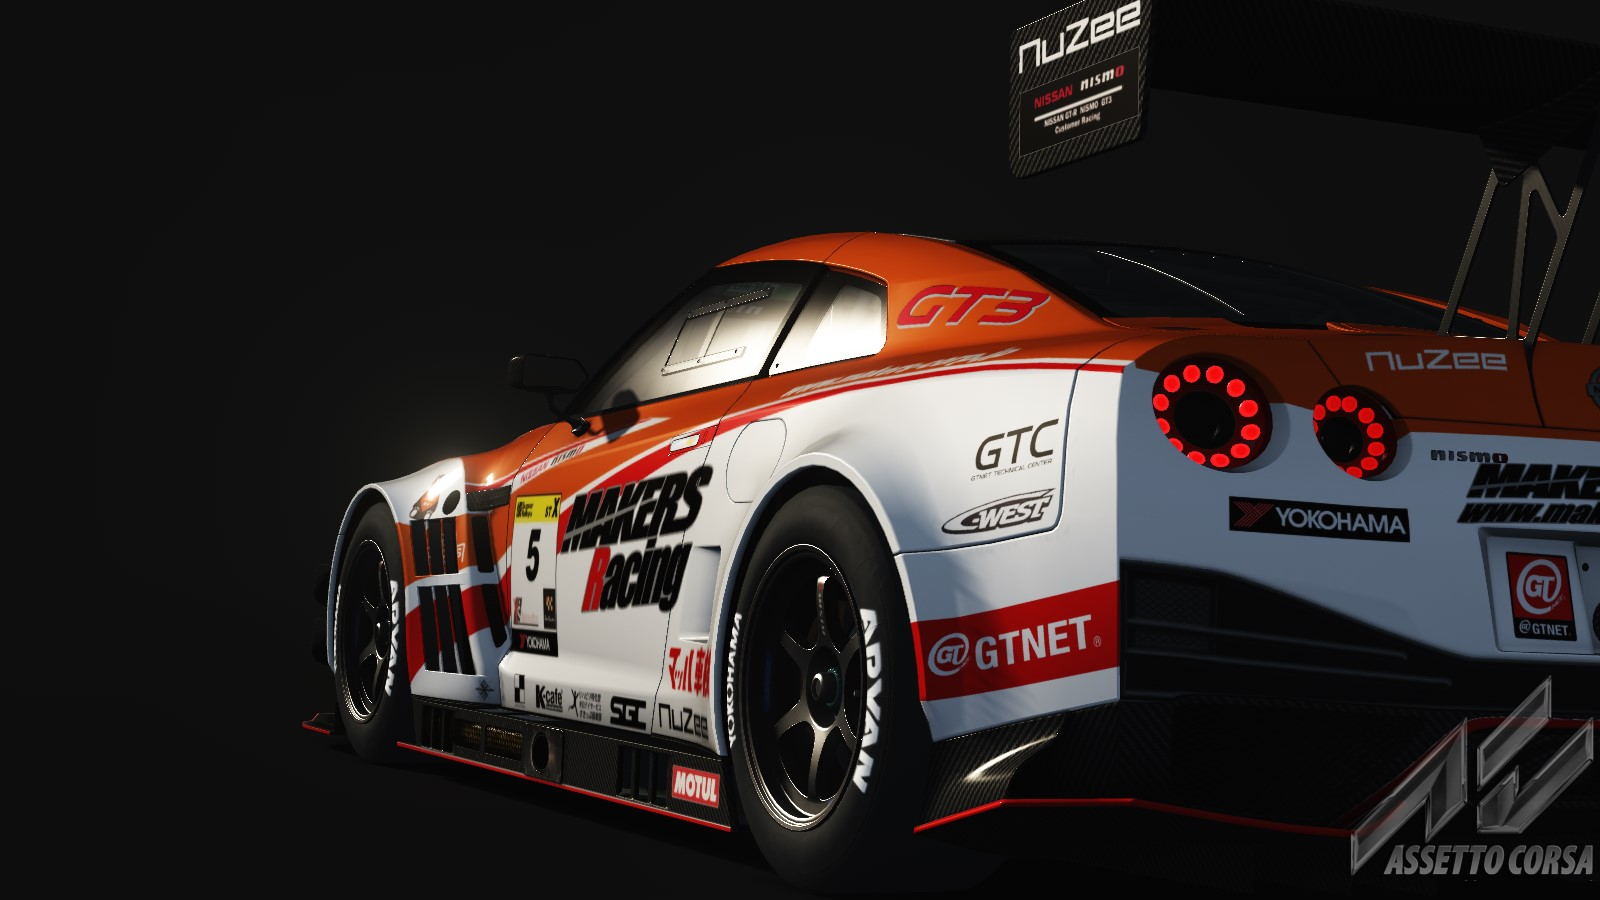 Showroom_ks_nissan_gtr_gt3_8-8-2016-19-7-44.jpg